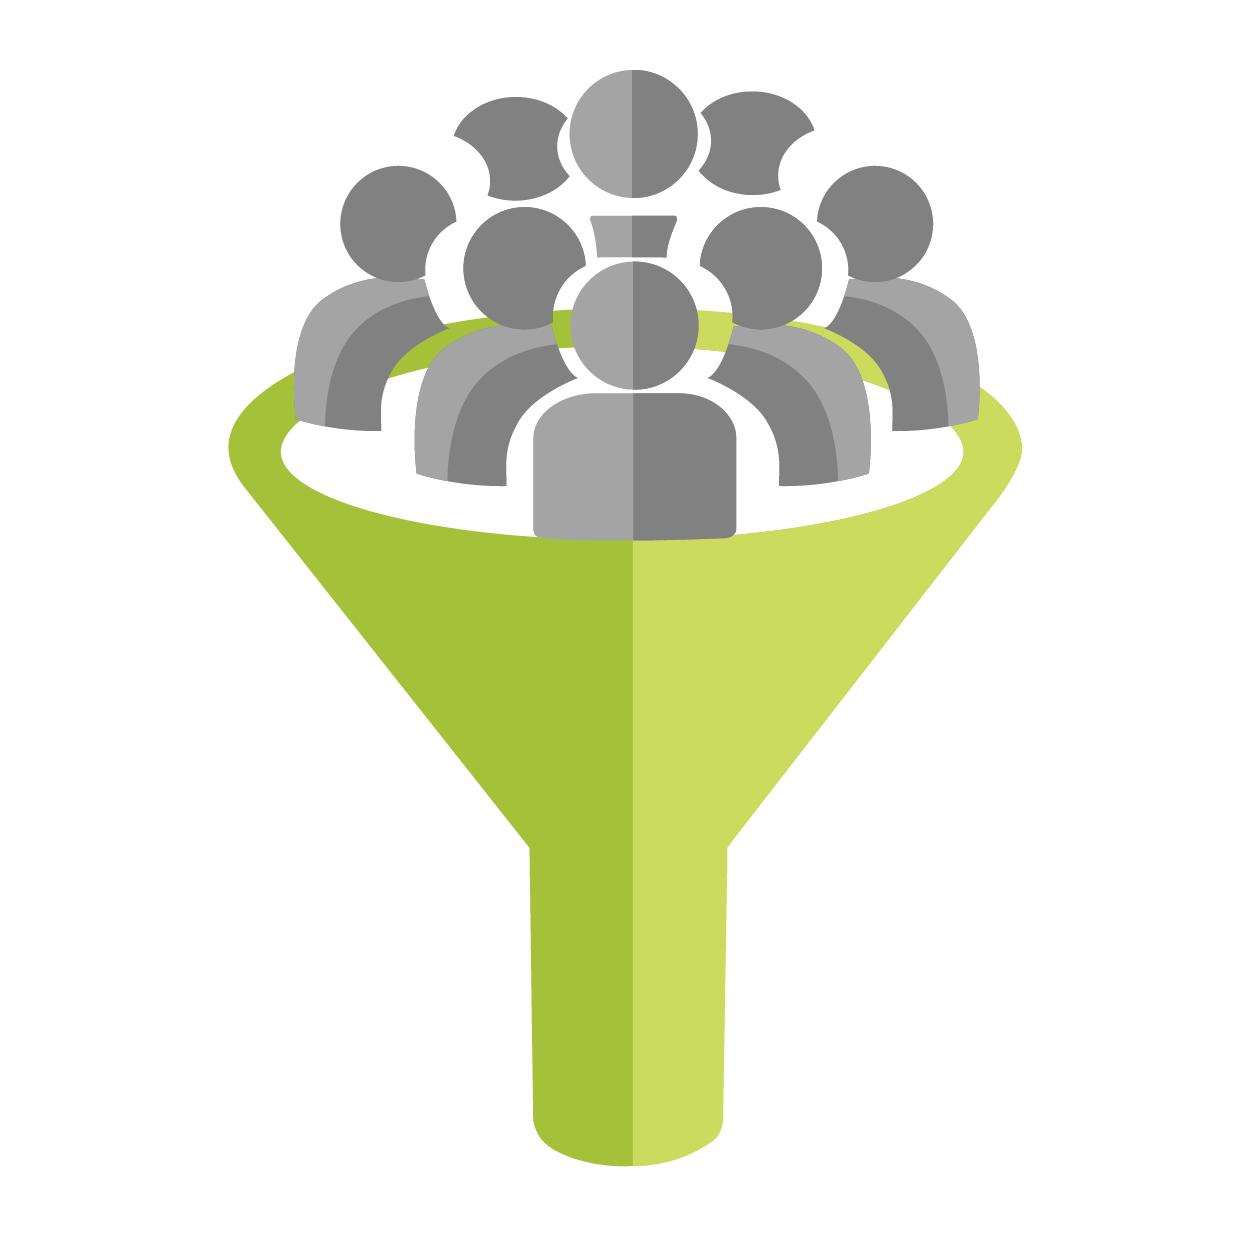 people-in-funnel-icon